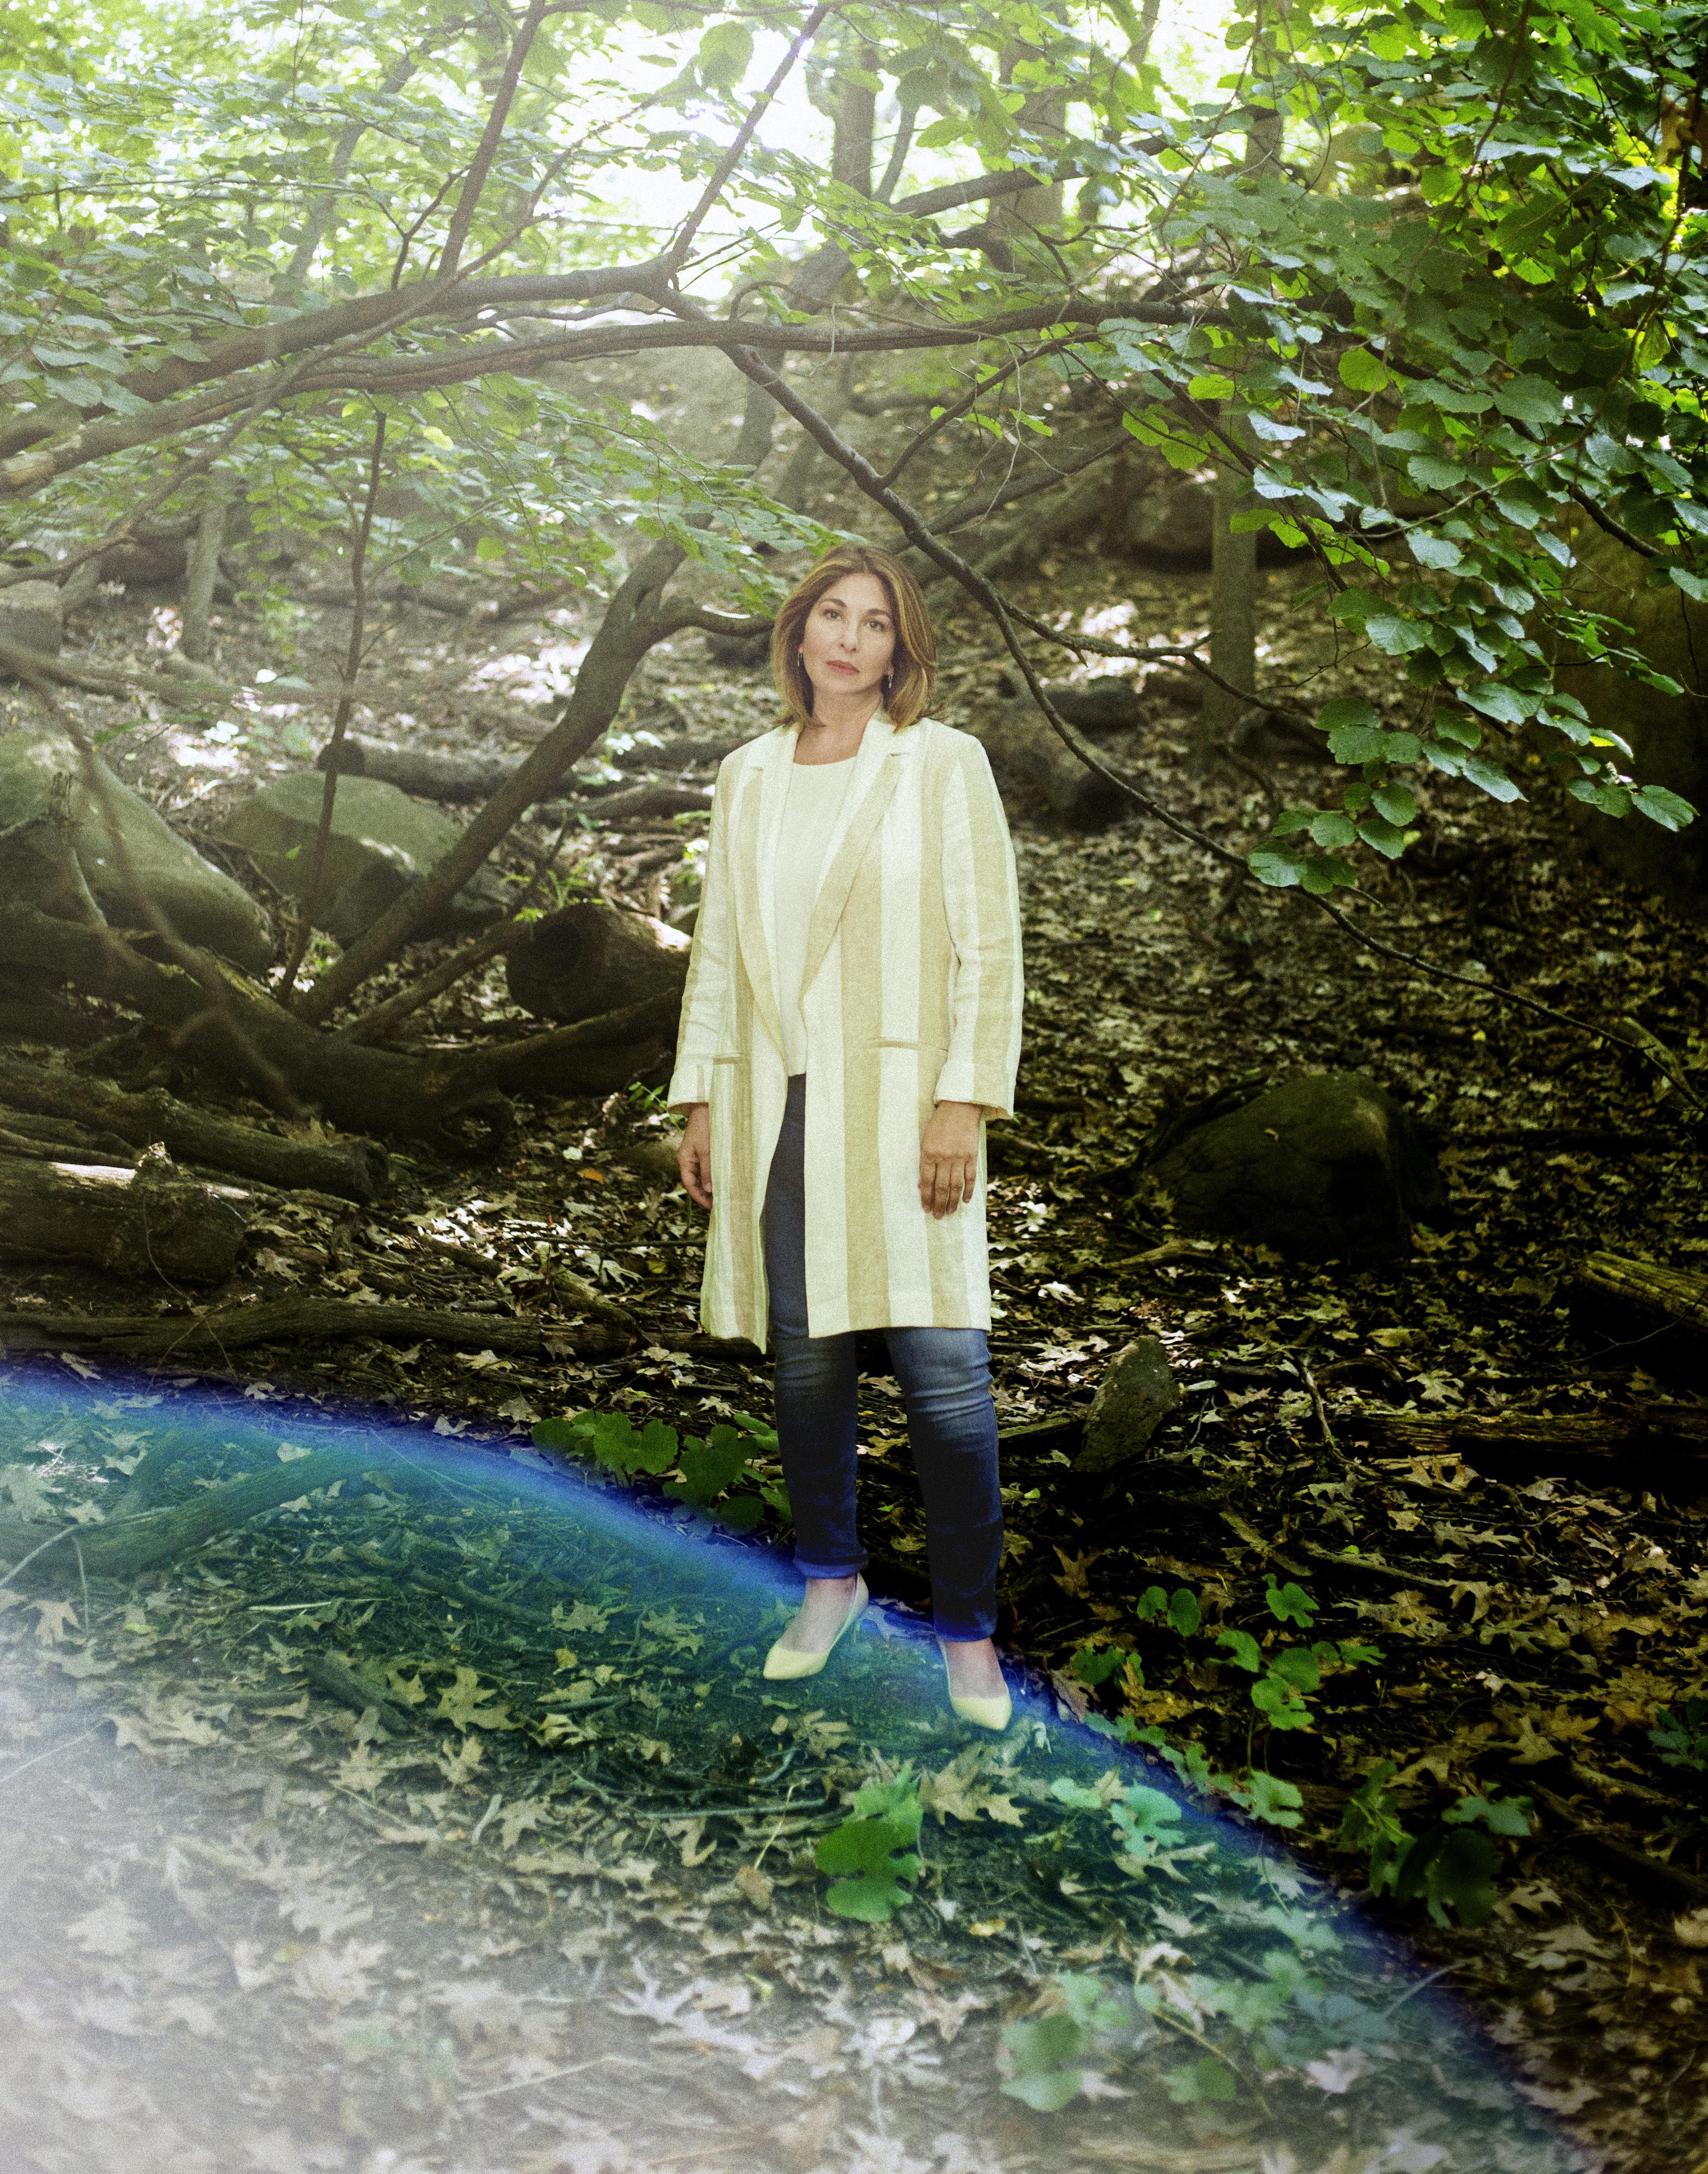 Progressive Prophet Naomi Klein Sees The Future. Can It Be Changed?